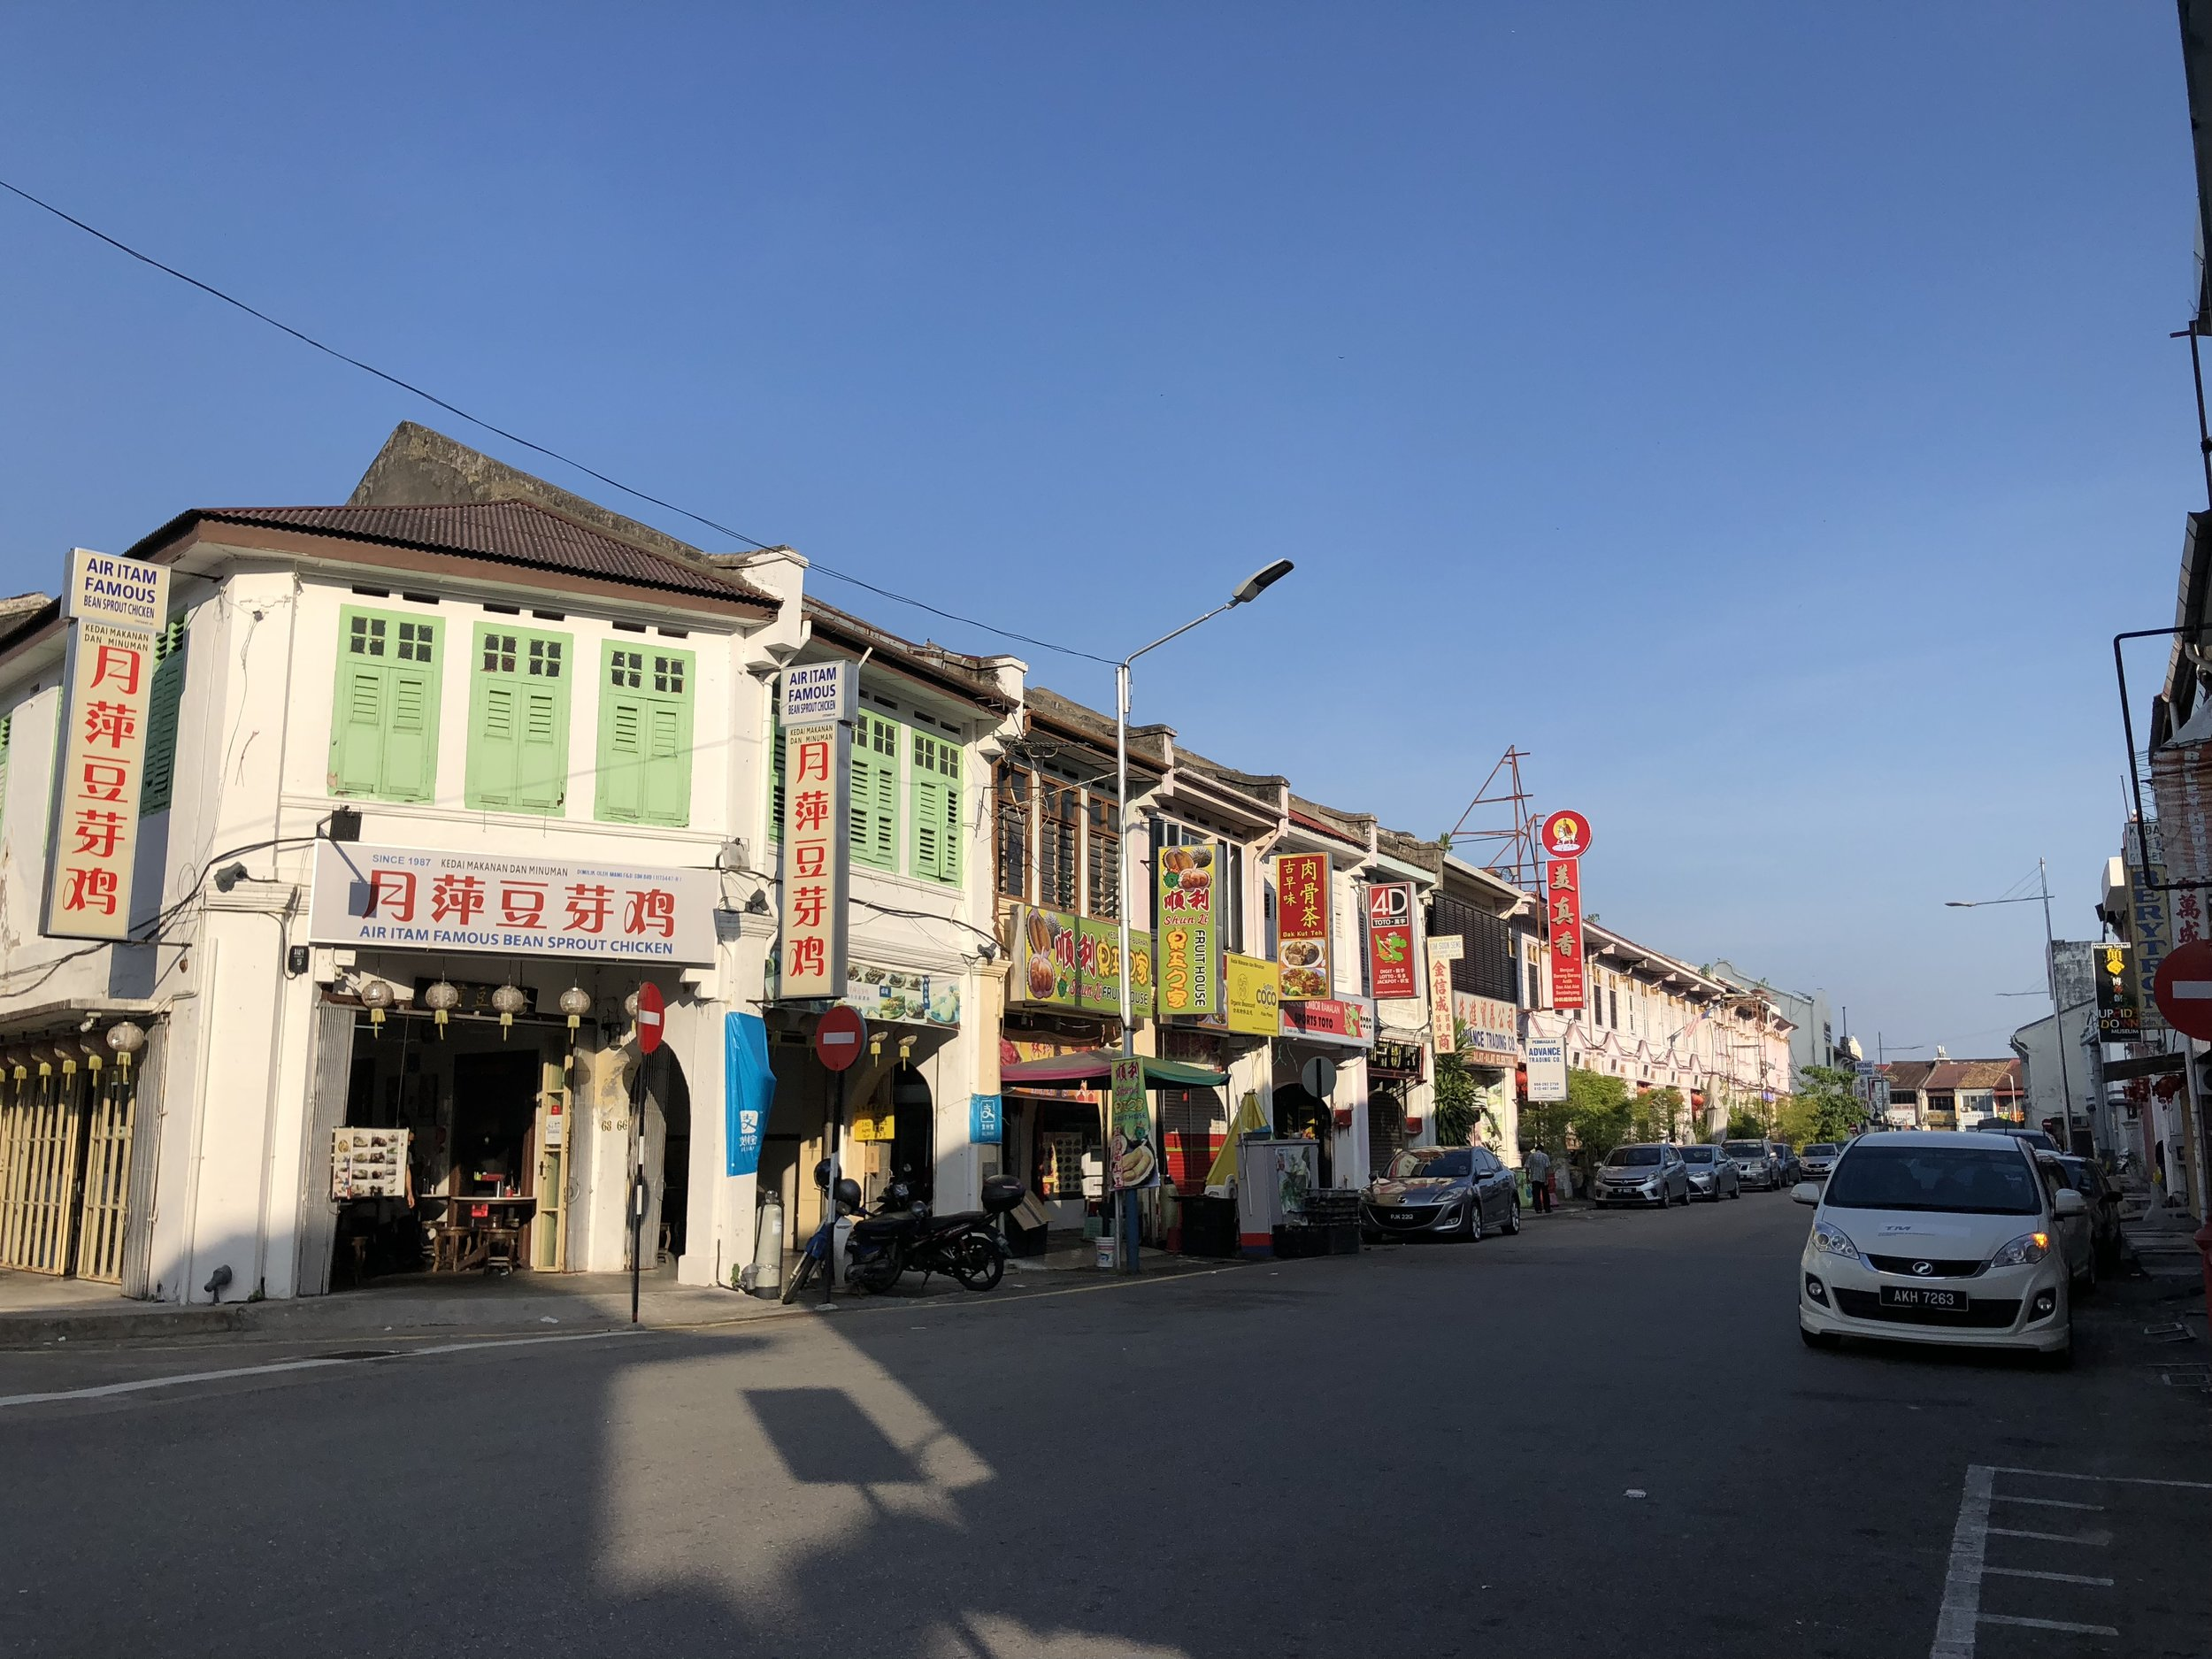 There was a lot of Chinese influence in the shops of Penang.